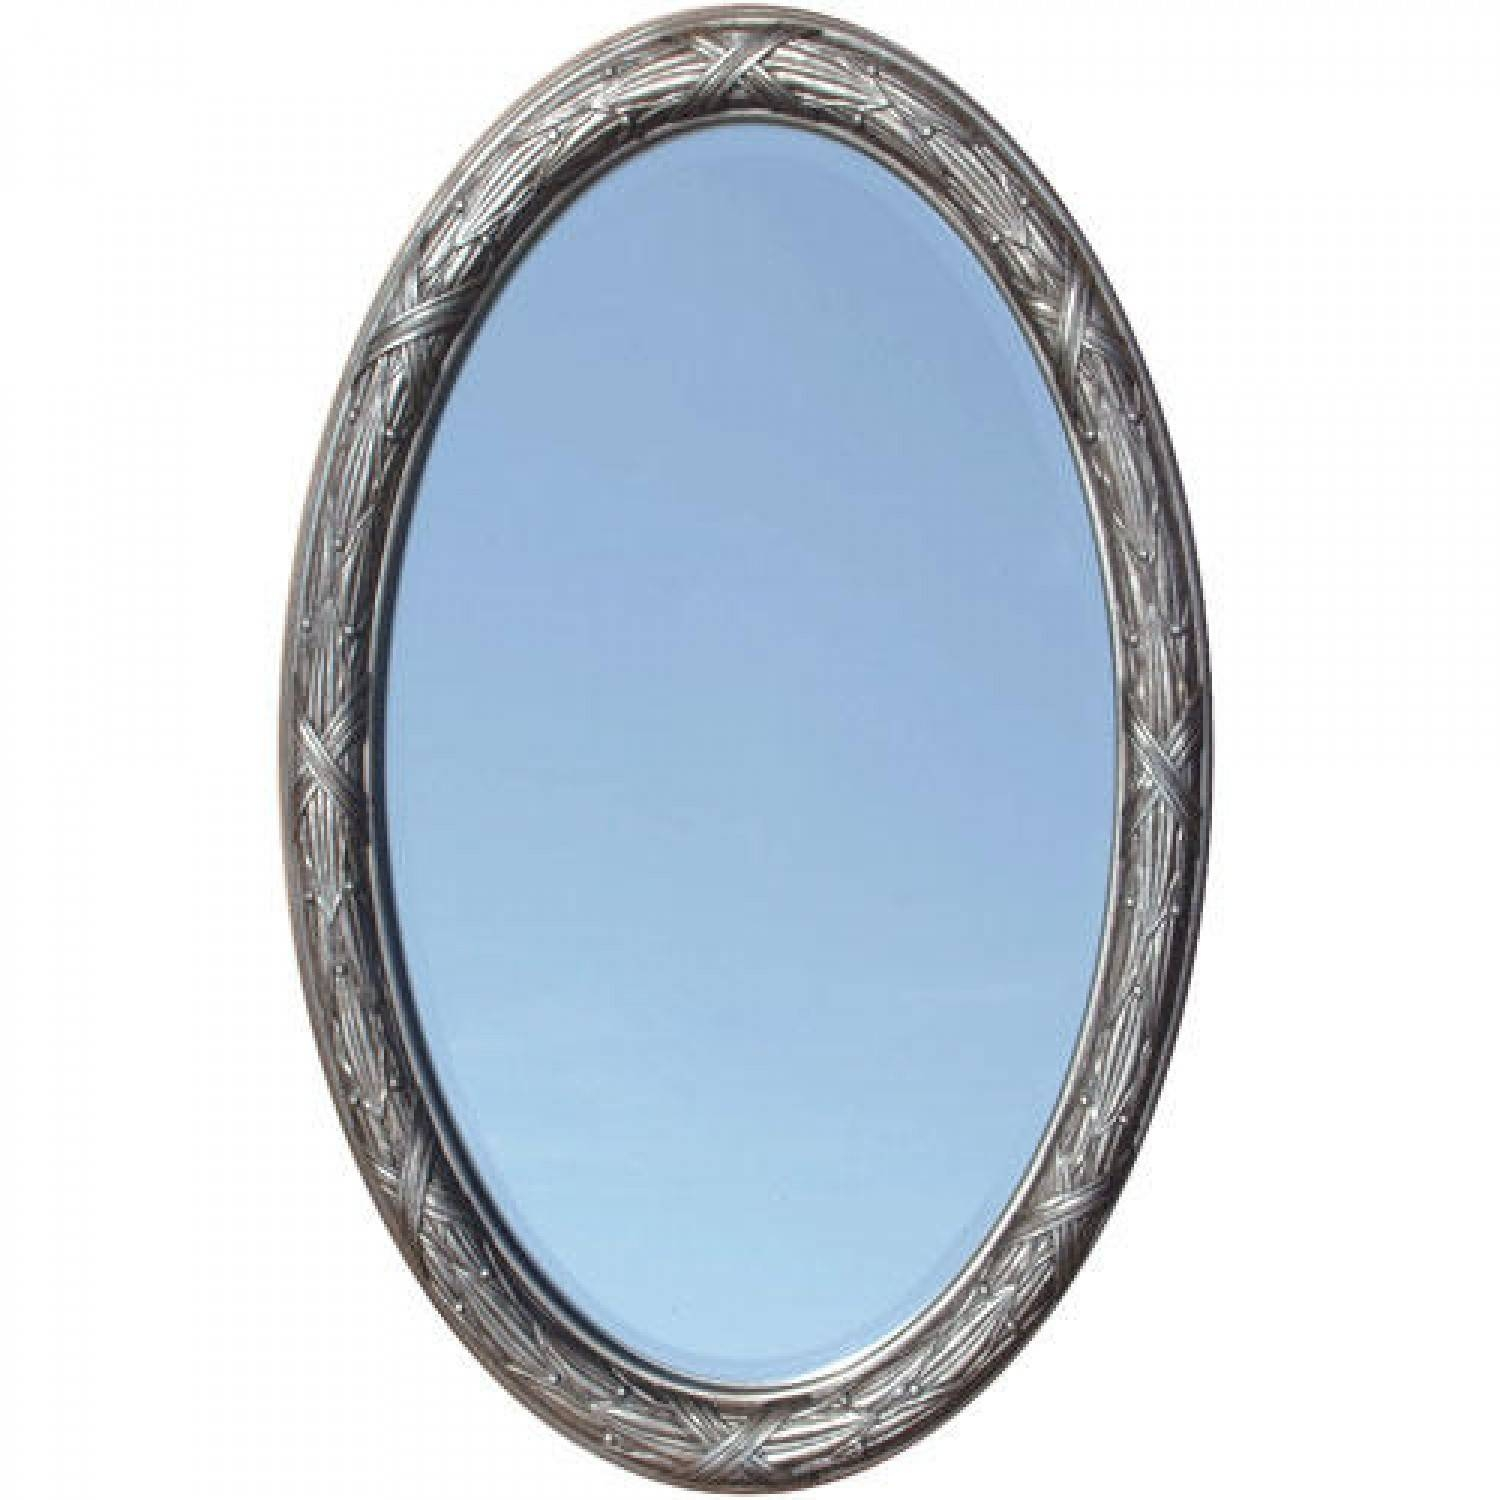 Corinthian Decorative Beveled Oval Mirror – Venetian Bronze – Bathroom Intended For Bevelled Oval Mirrors (View 2 of 15)